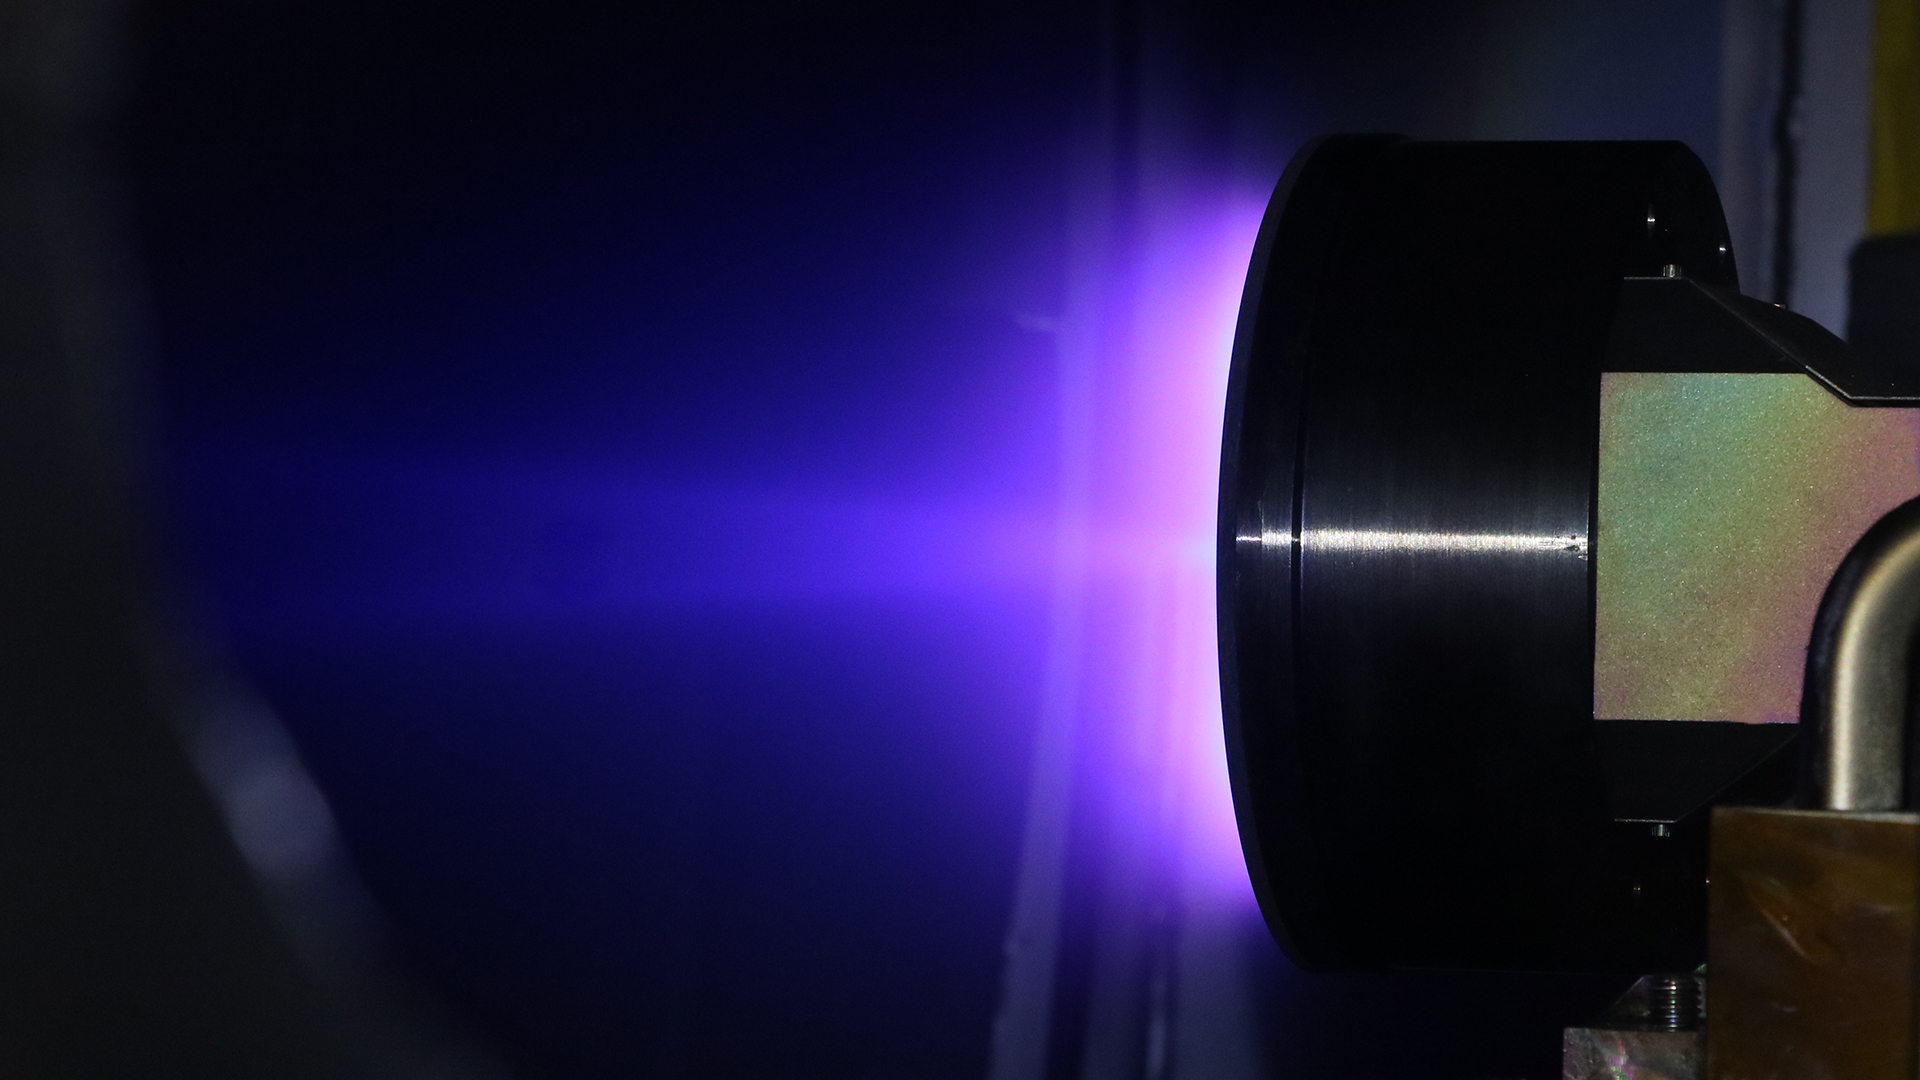 Starlink krypton ion thrusters (SpaceX) testing 1